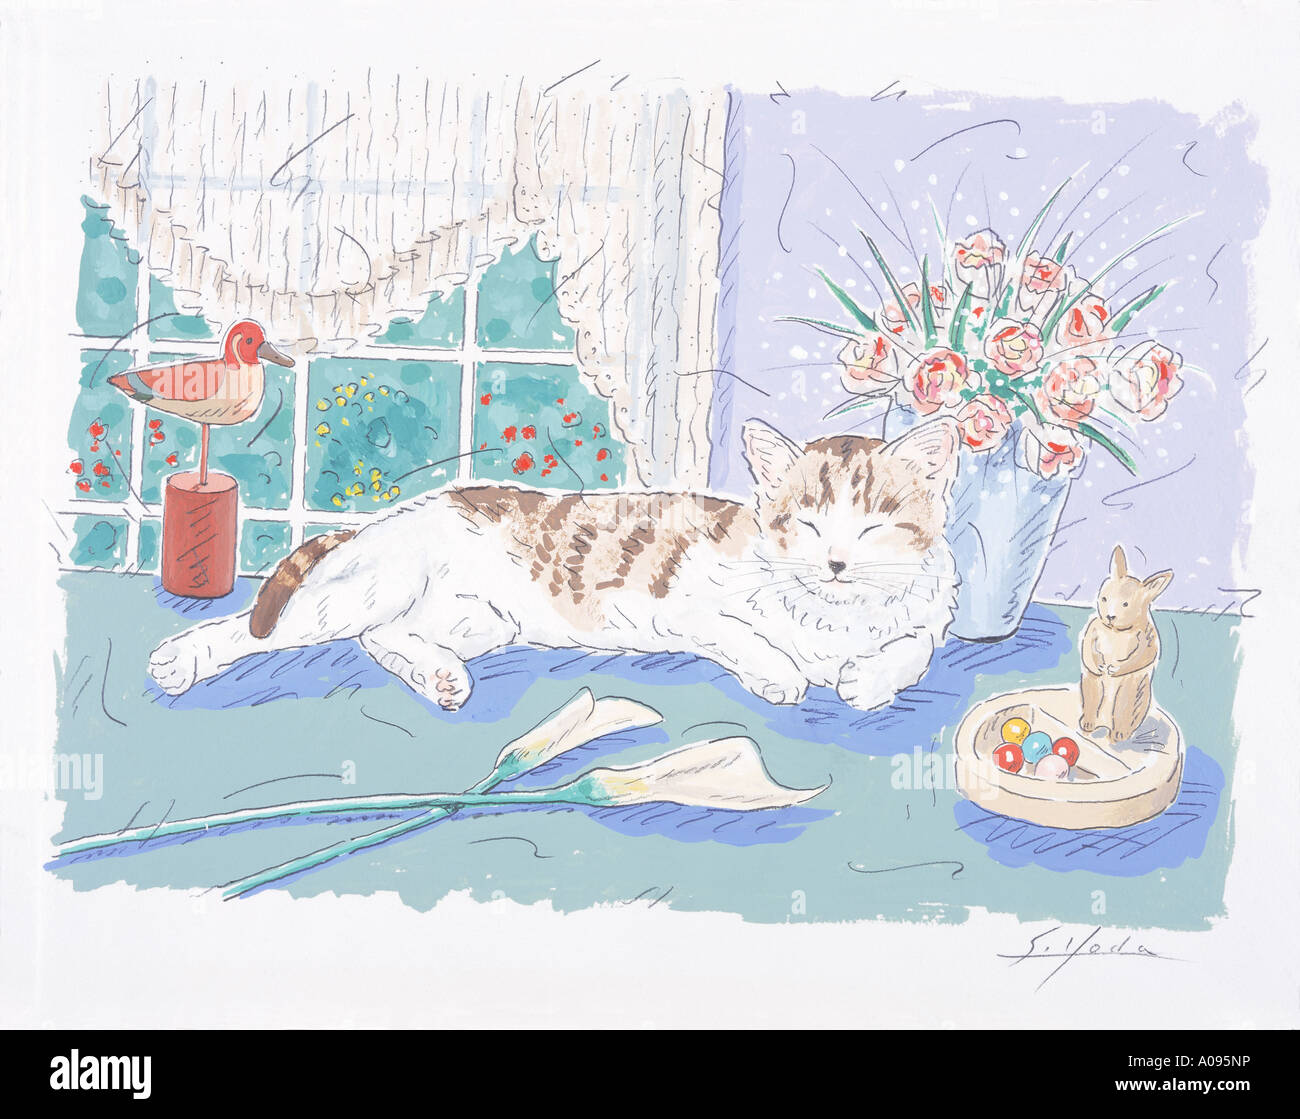 An illustration of a cat - Stock Image